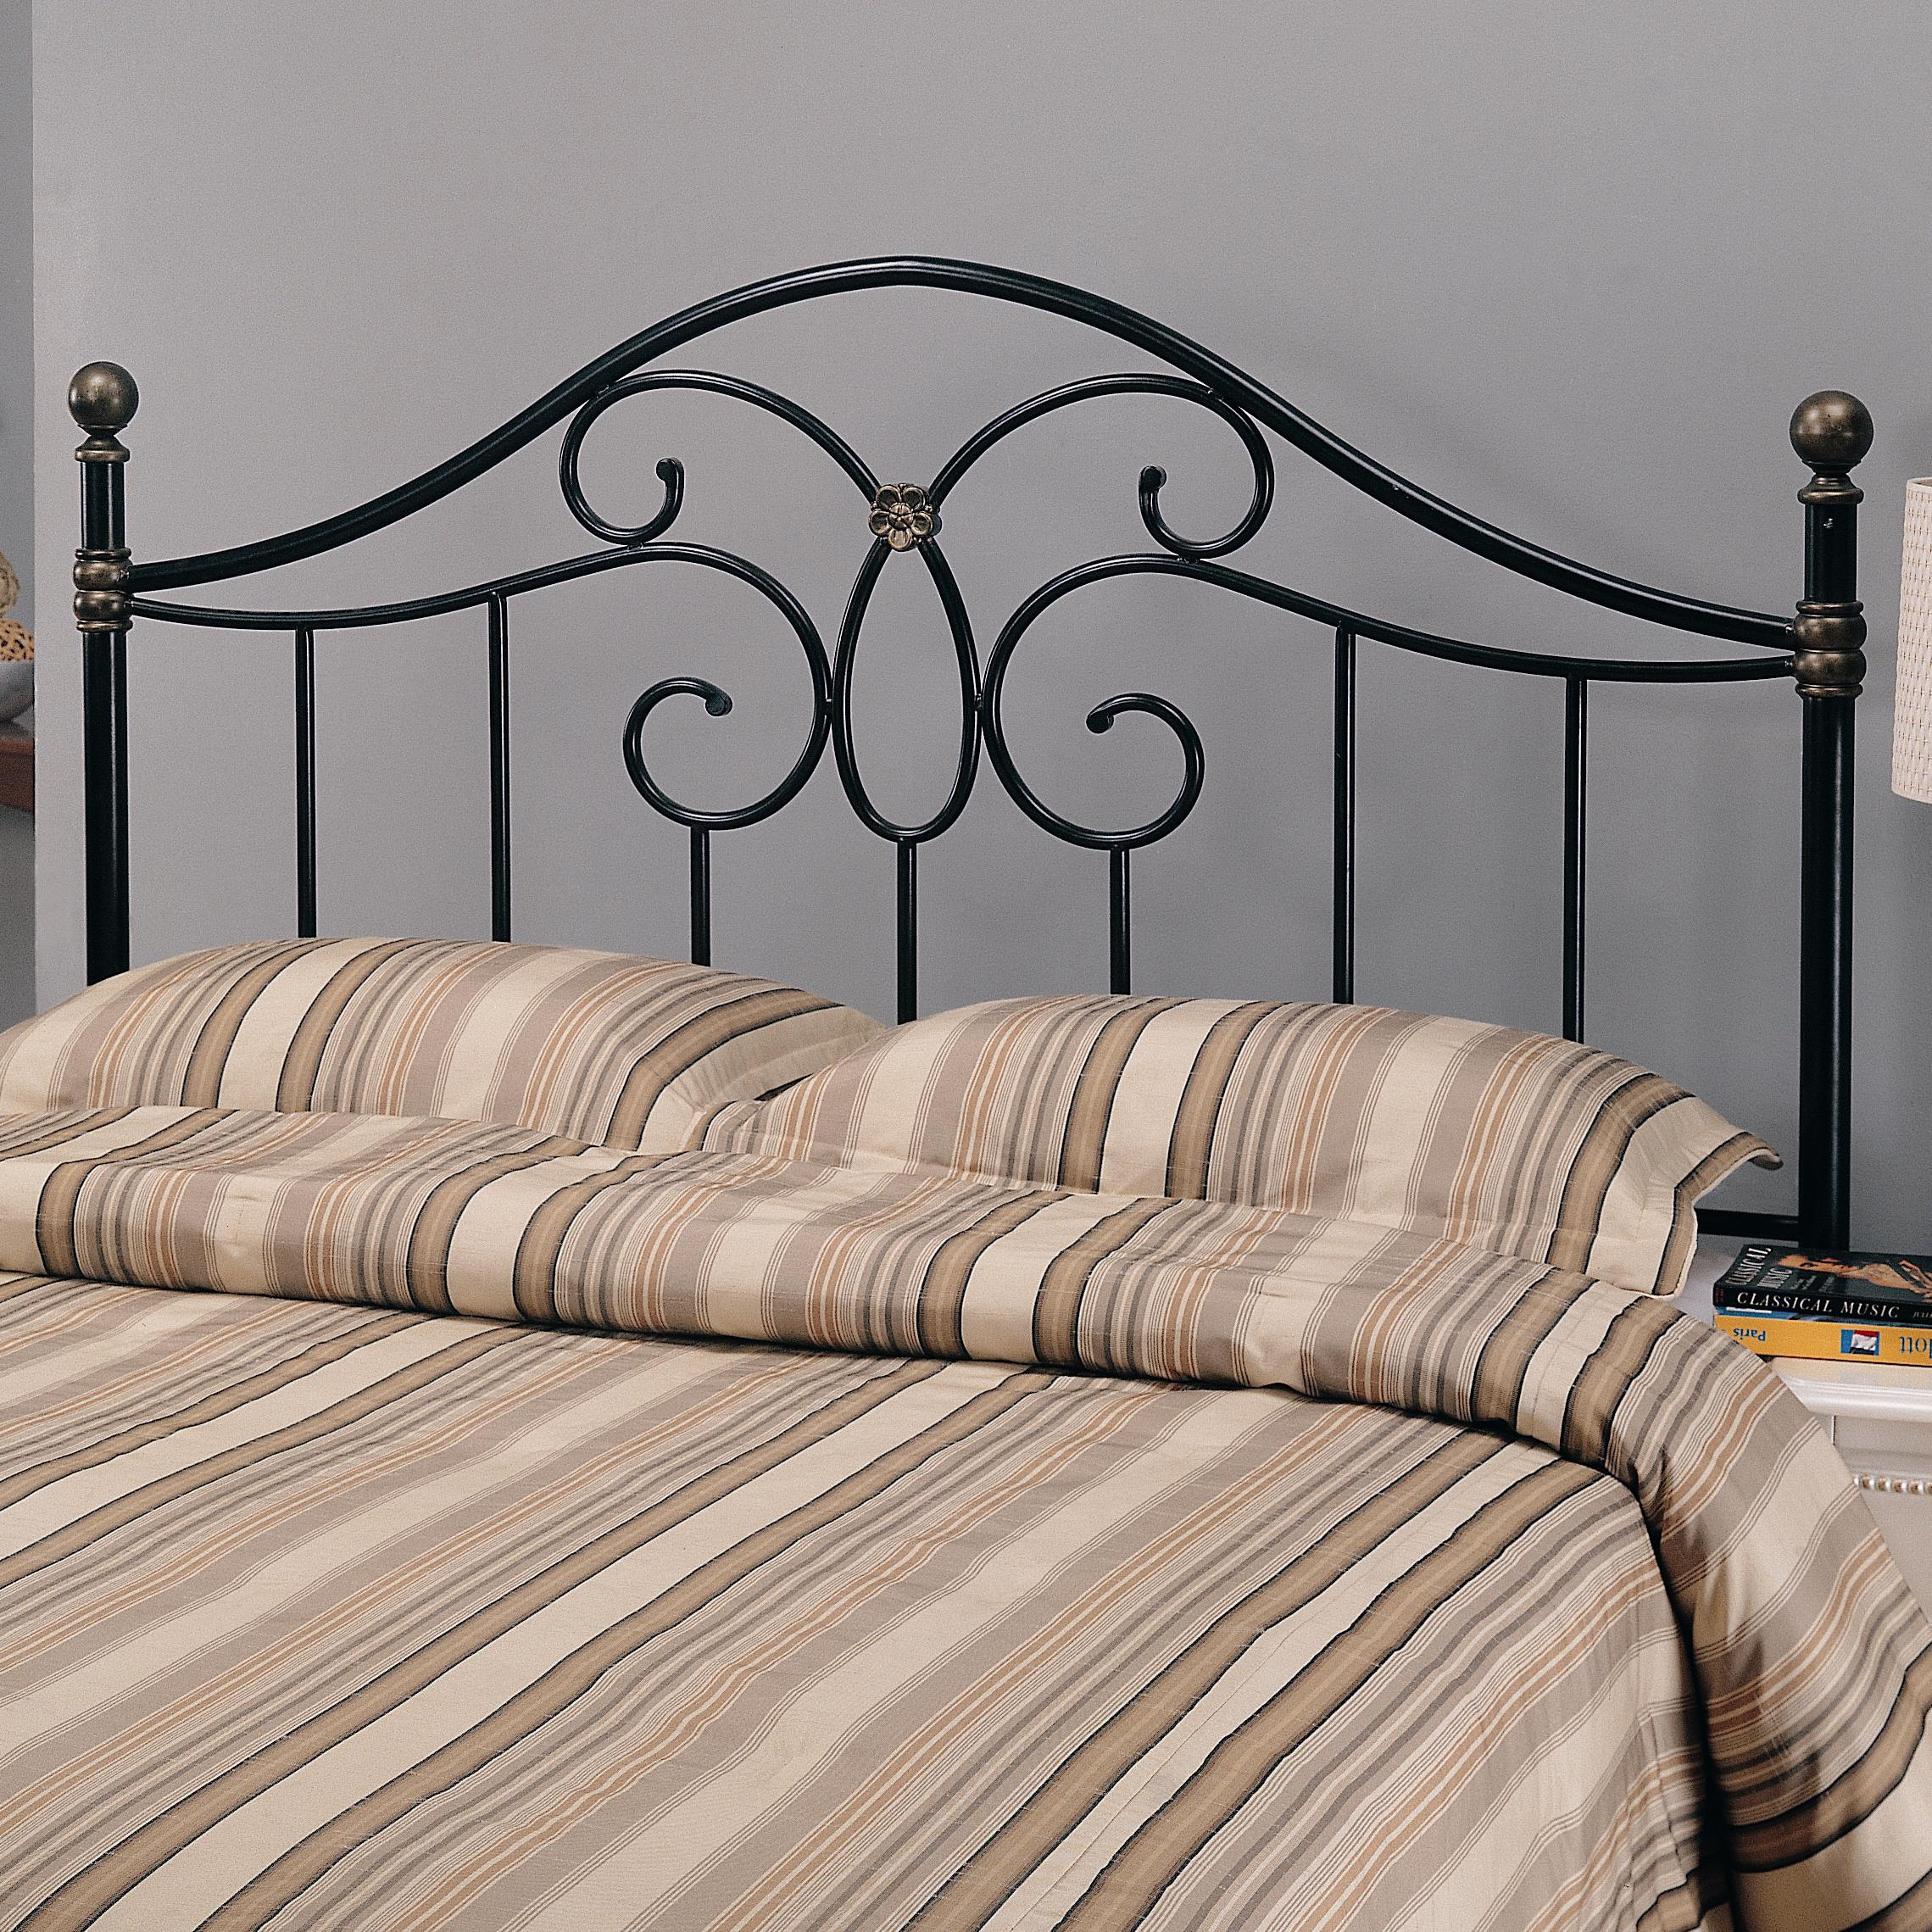 Coaster Iron Beds And Headboards Full/Queen Black Metal Headboard